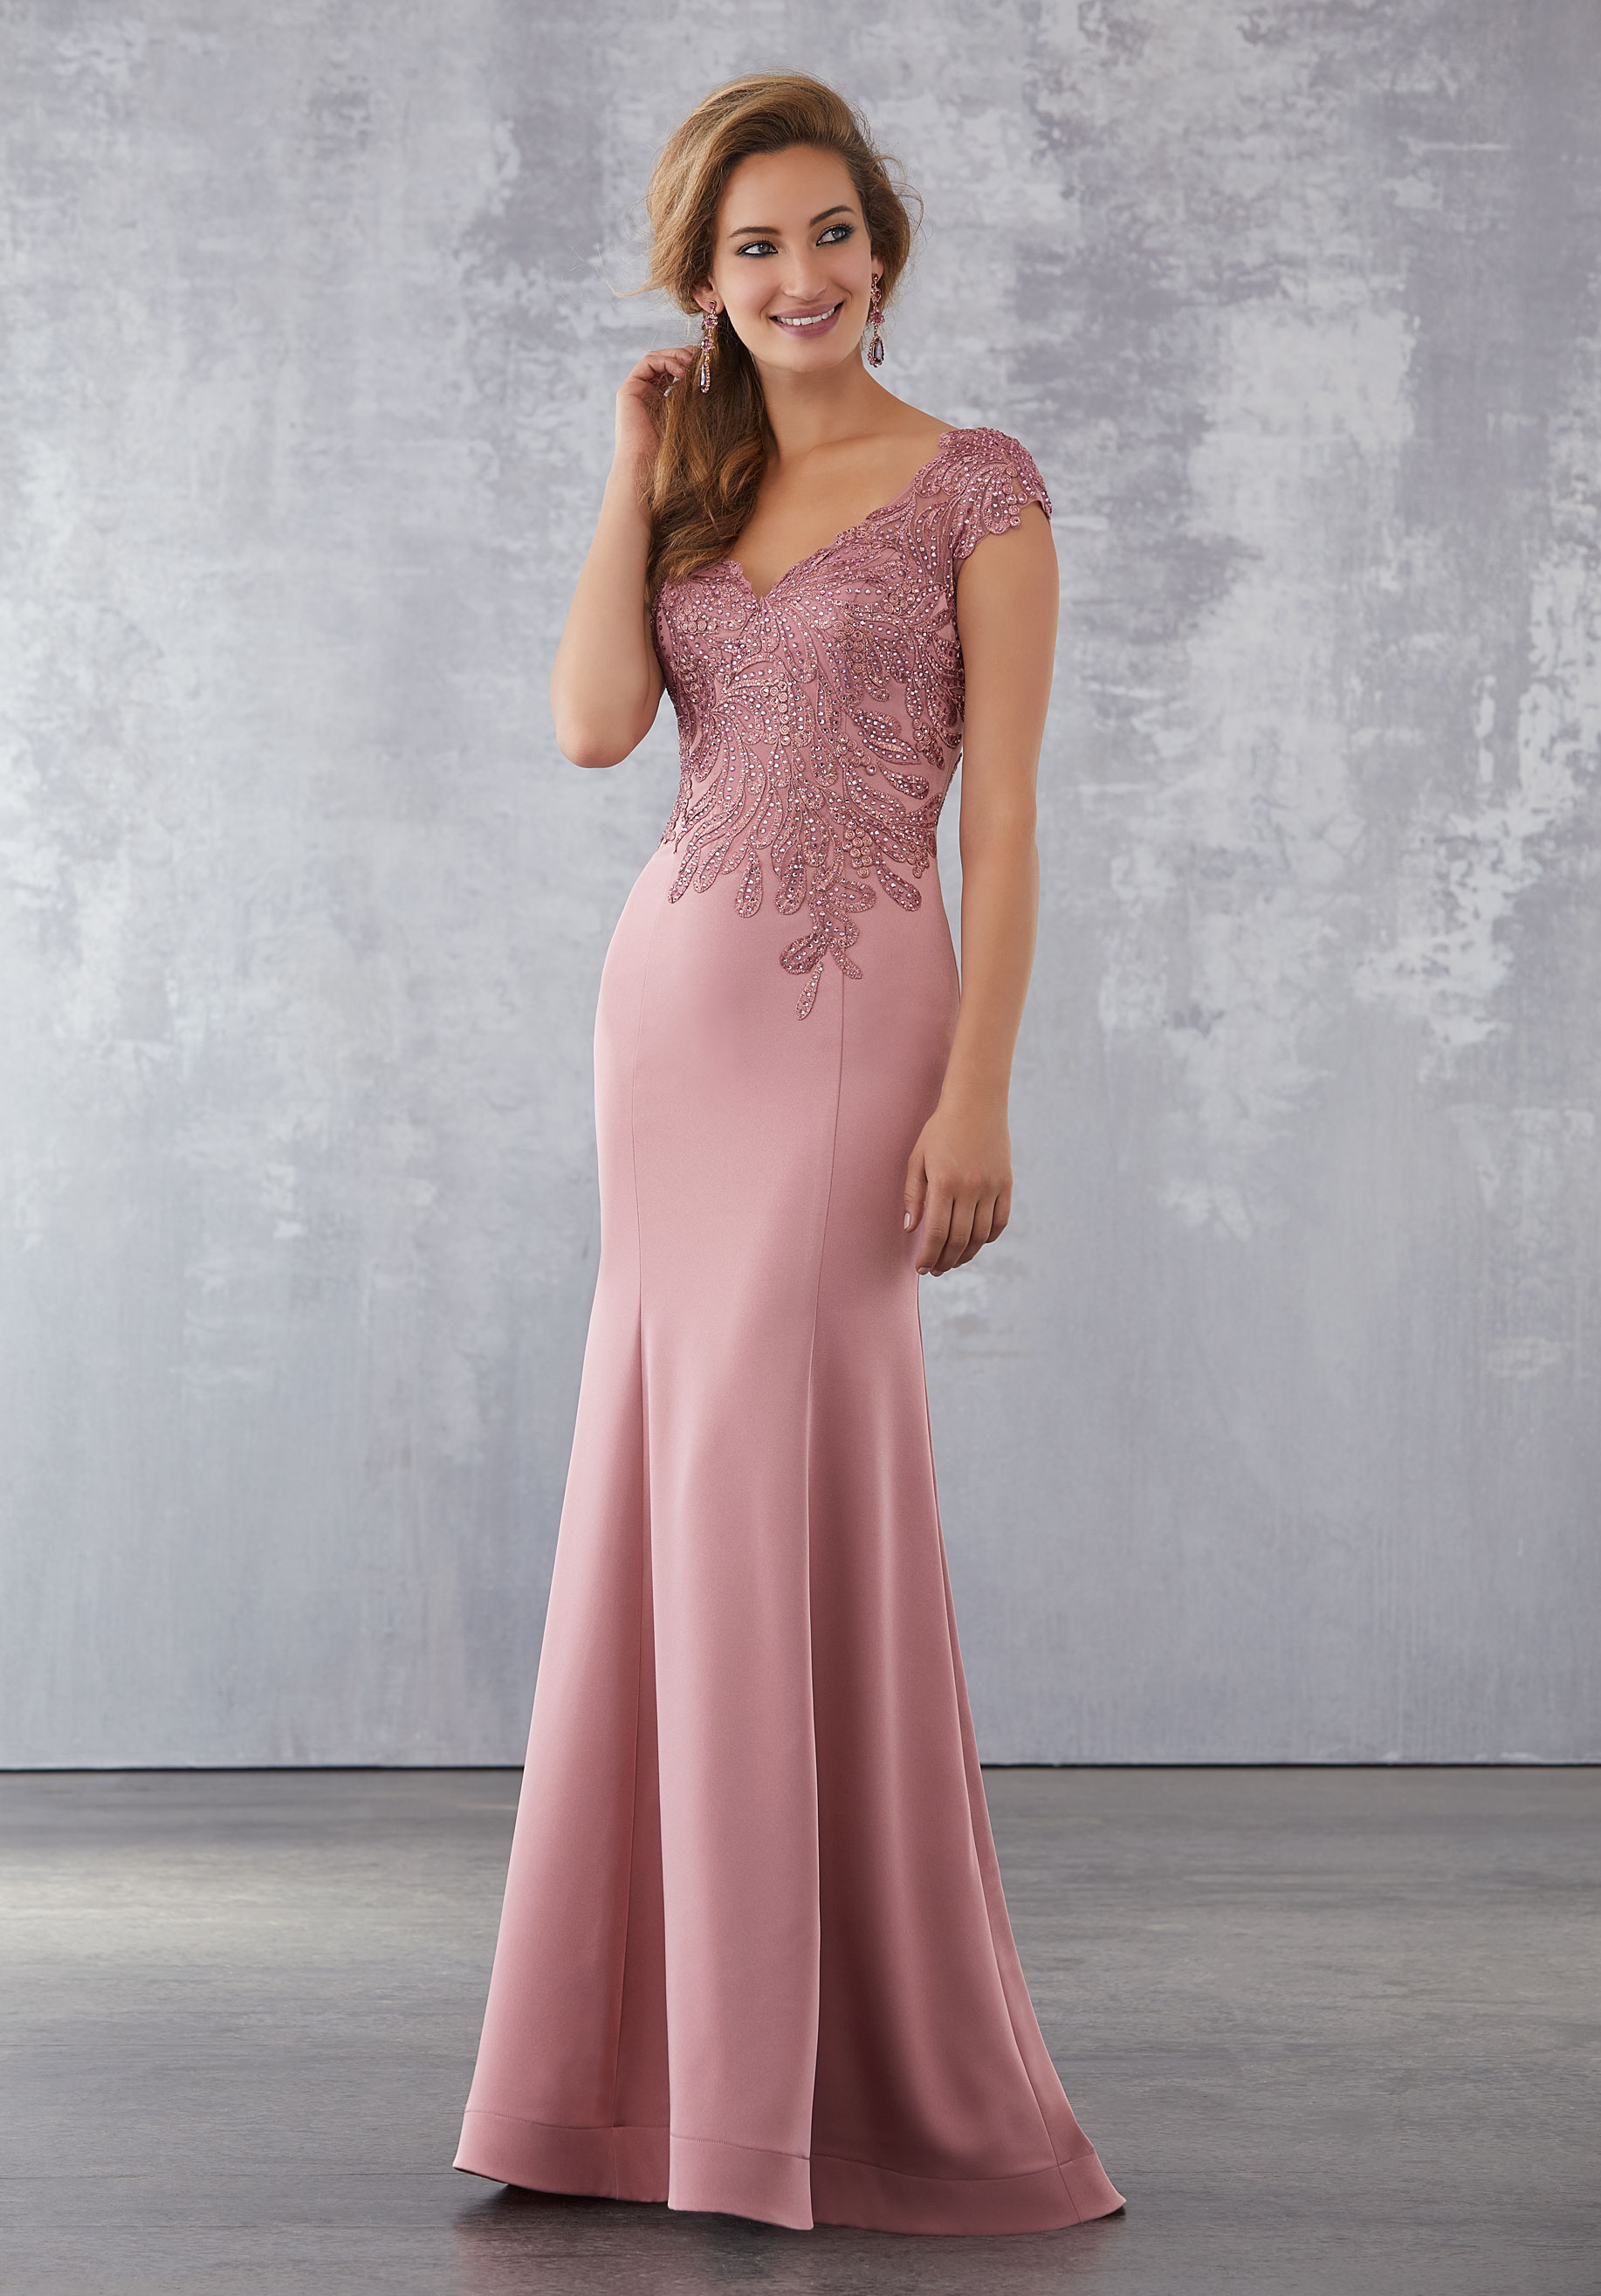 Tastefully combine the dress for the special occasion